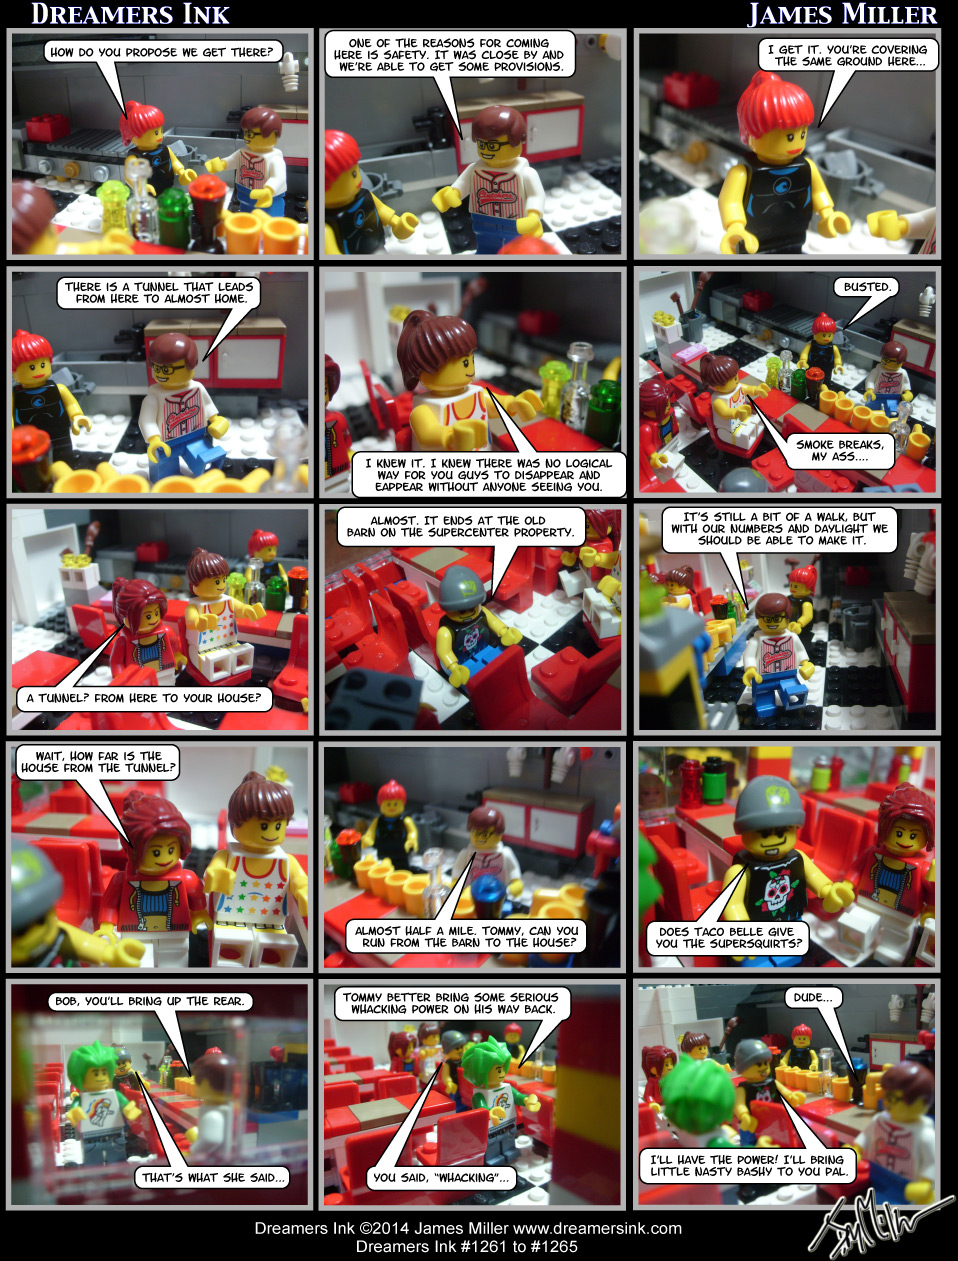 Strips #1261 To #1265